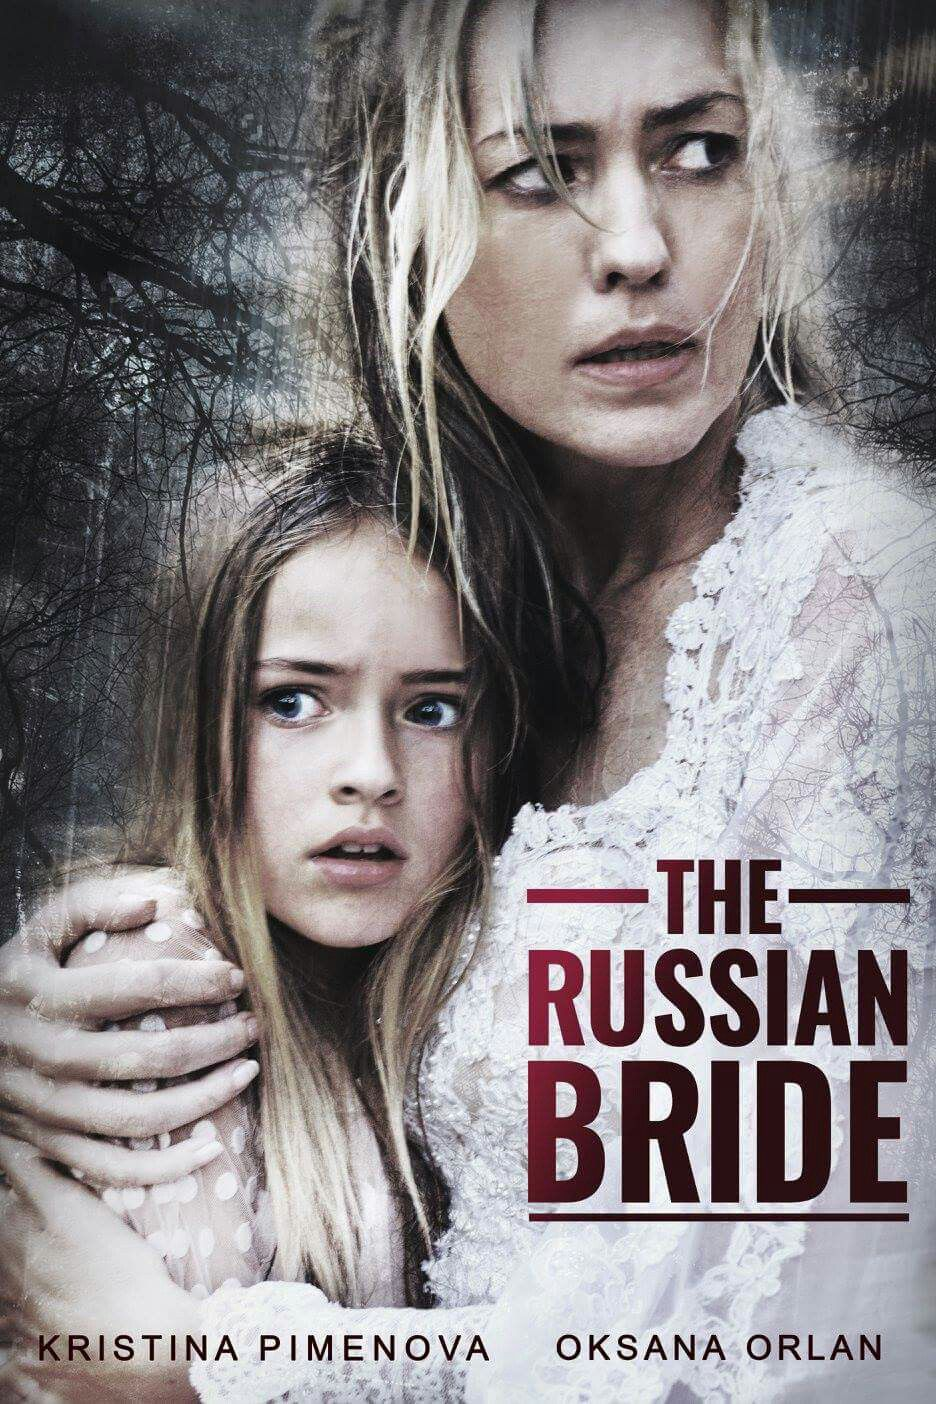 The Russian Bride - Corbin Bernsen Marries a Russian Bride; Terror Ensues